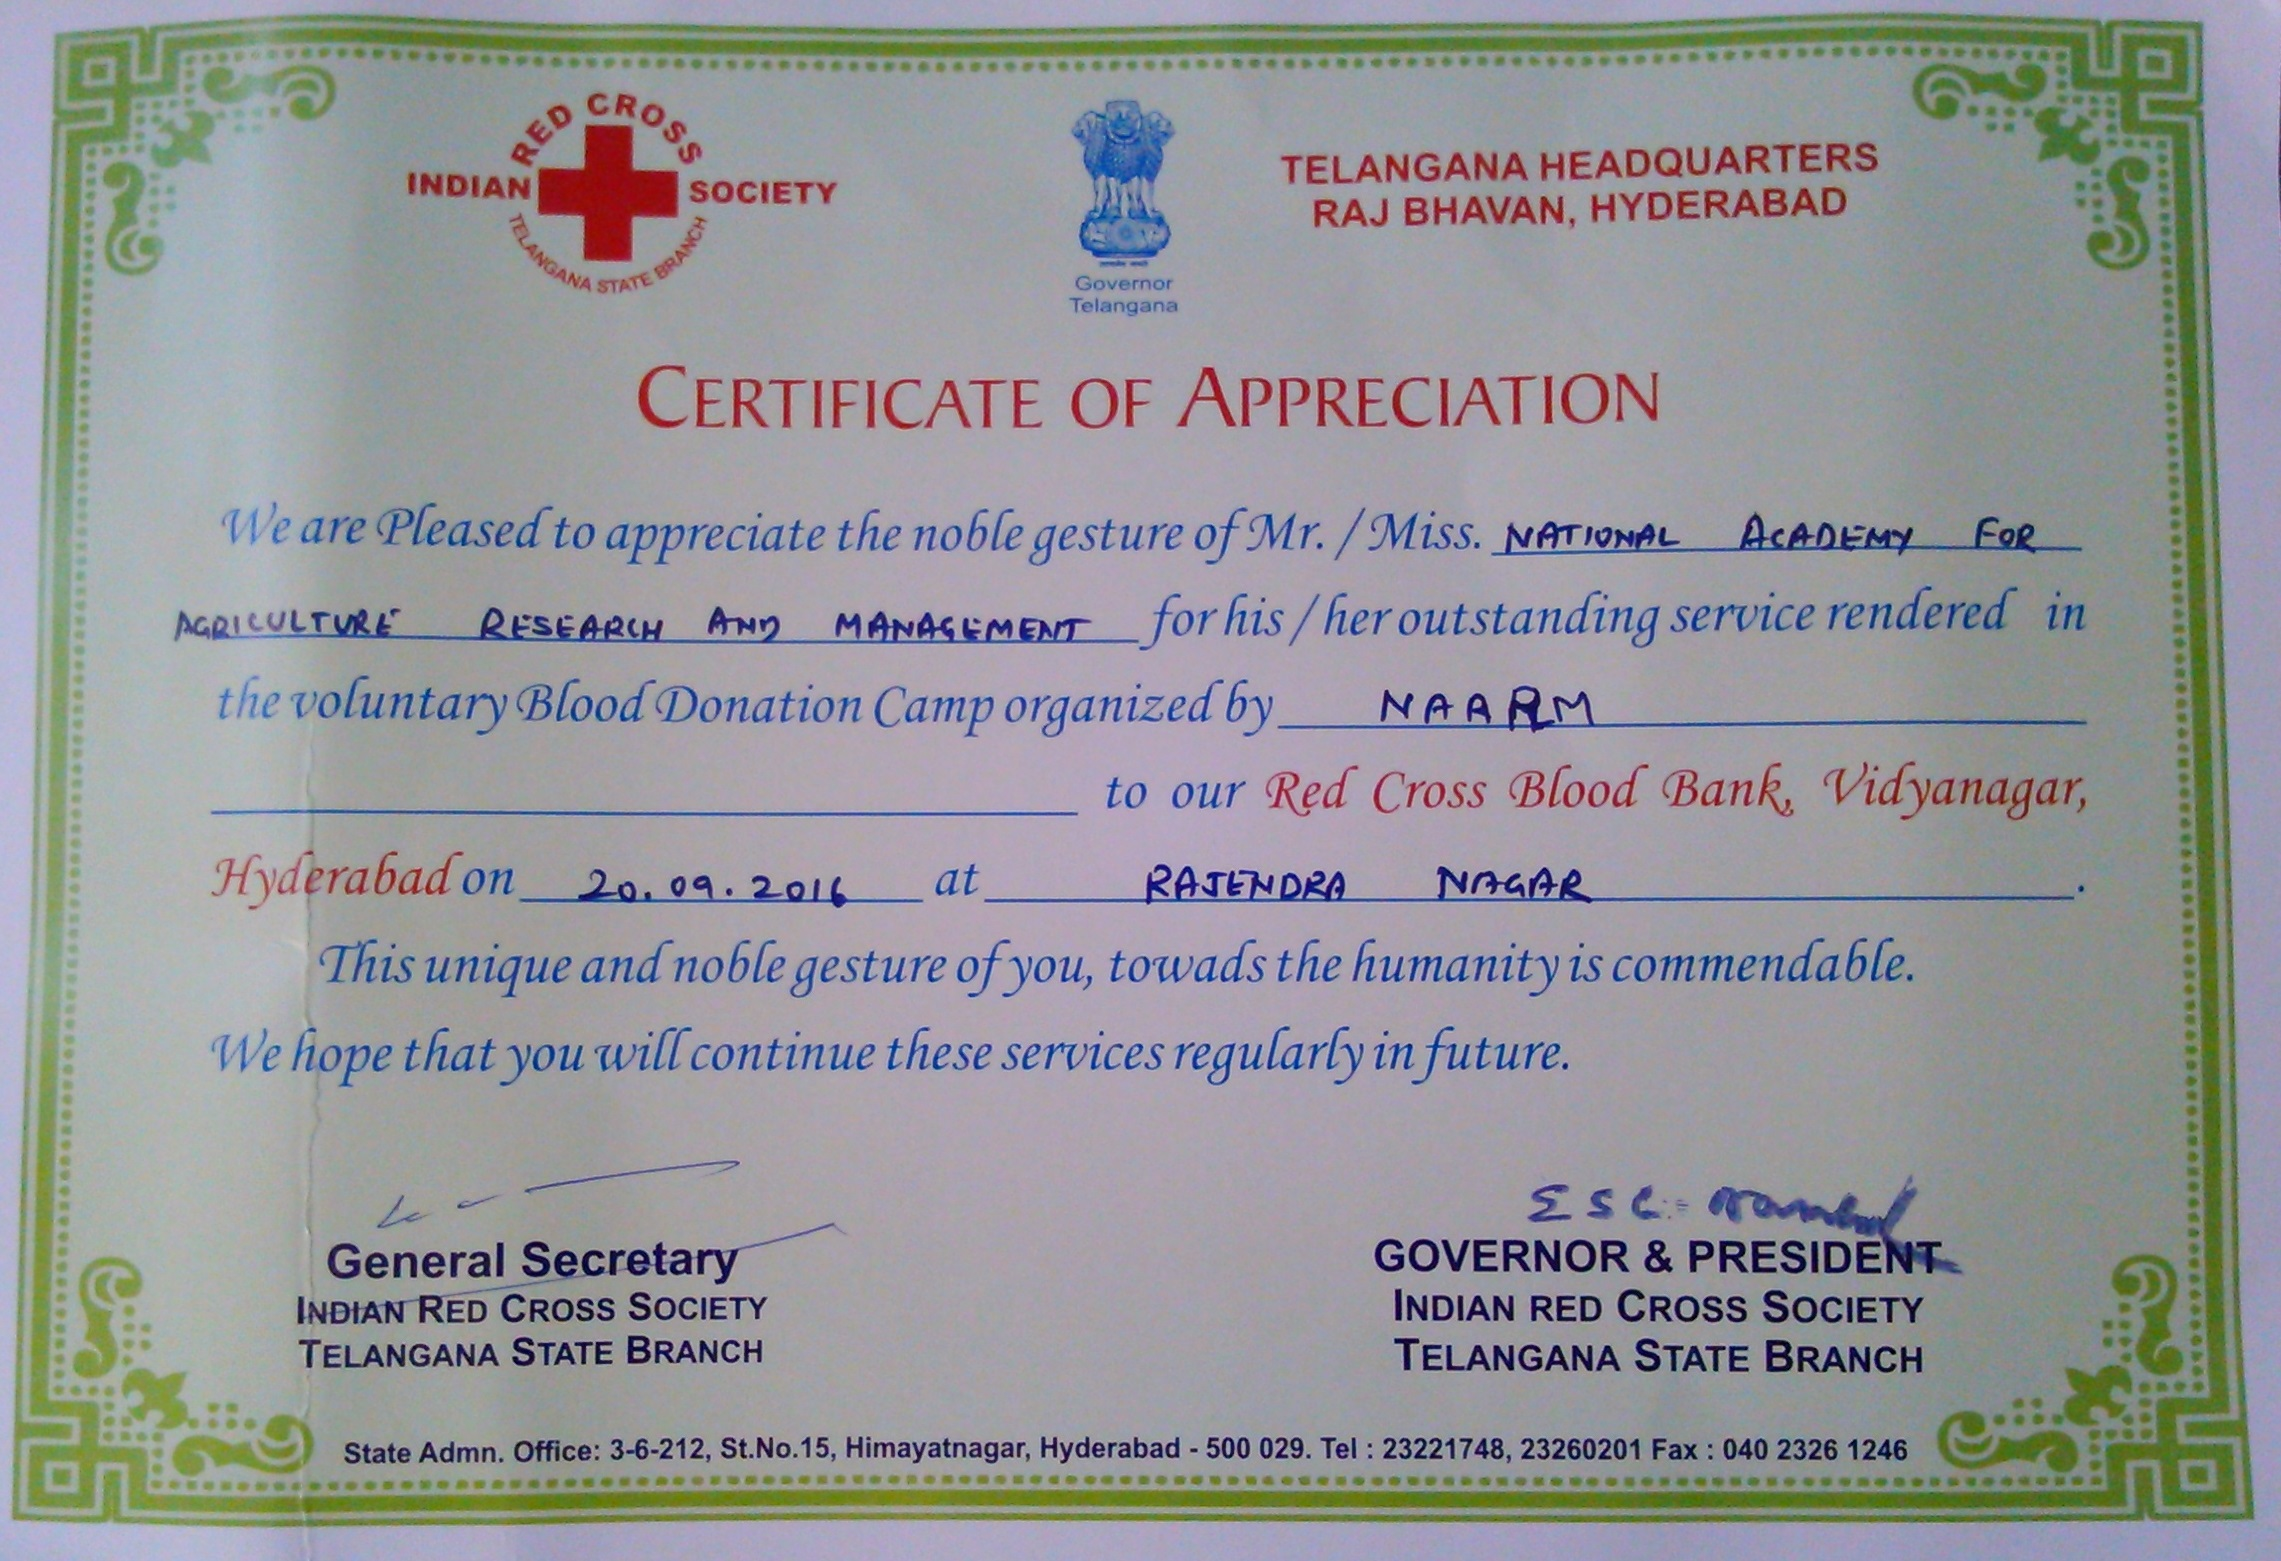 Naarm get certificate of appreciation from governor and president of blood donation yelopaper Choice Image